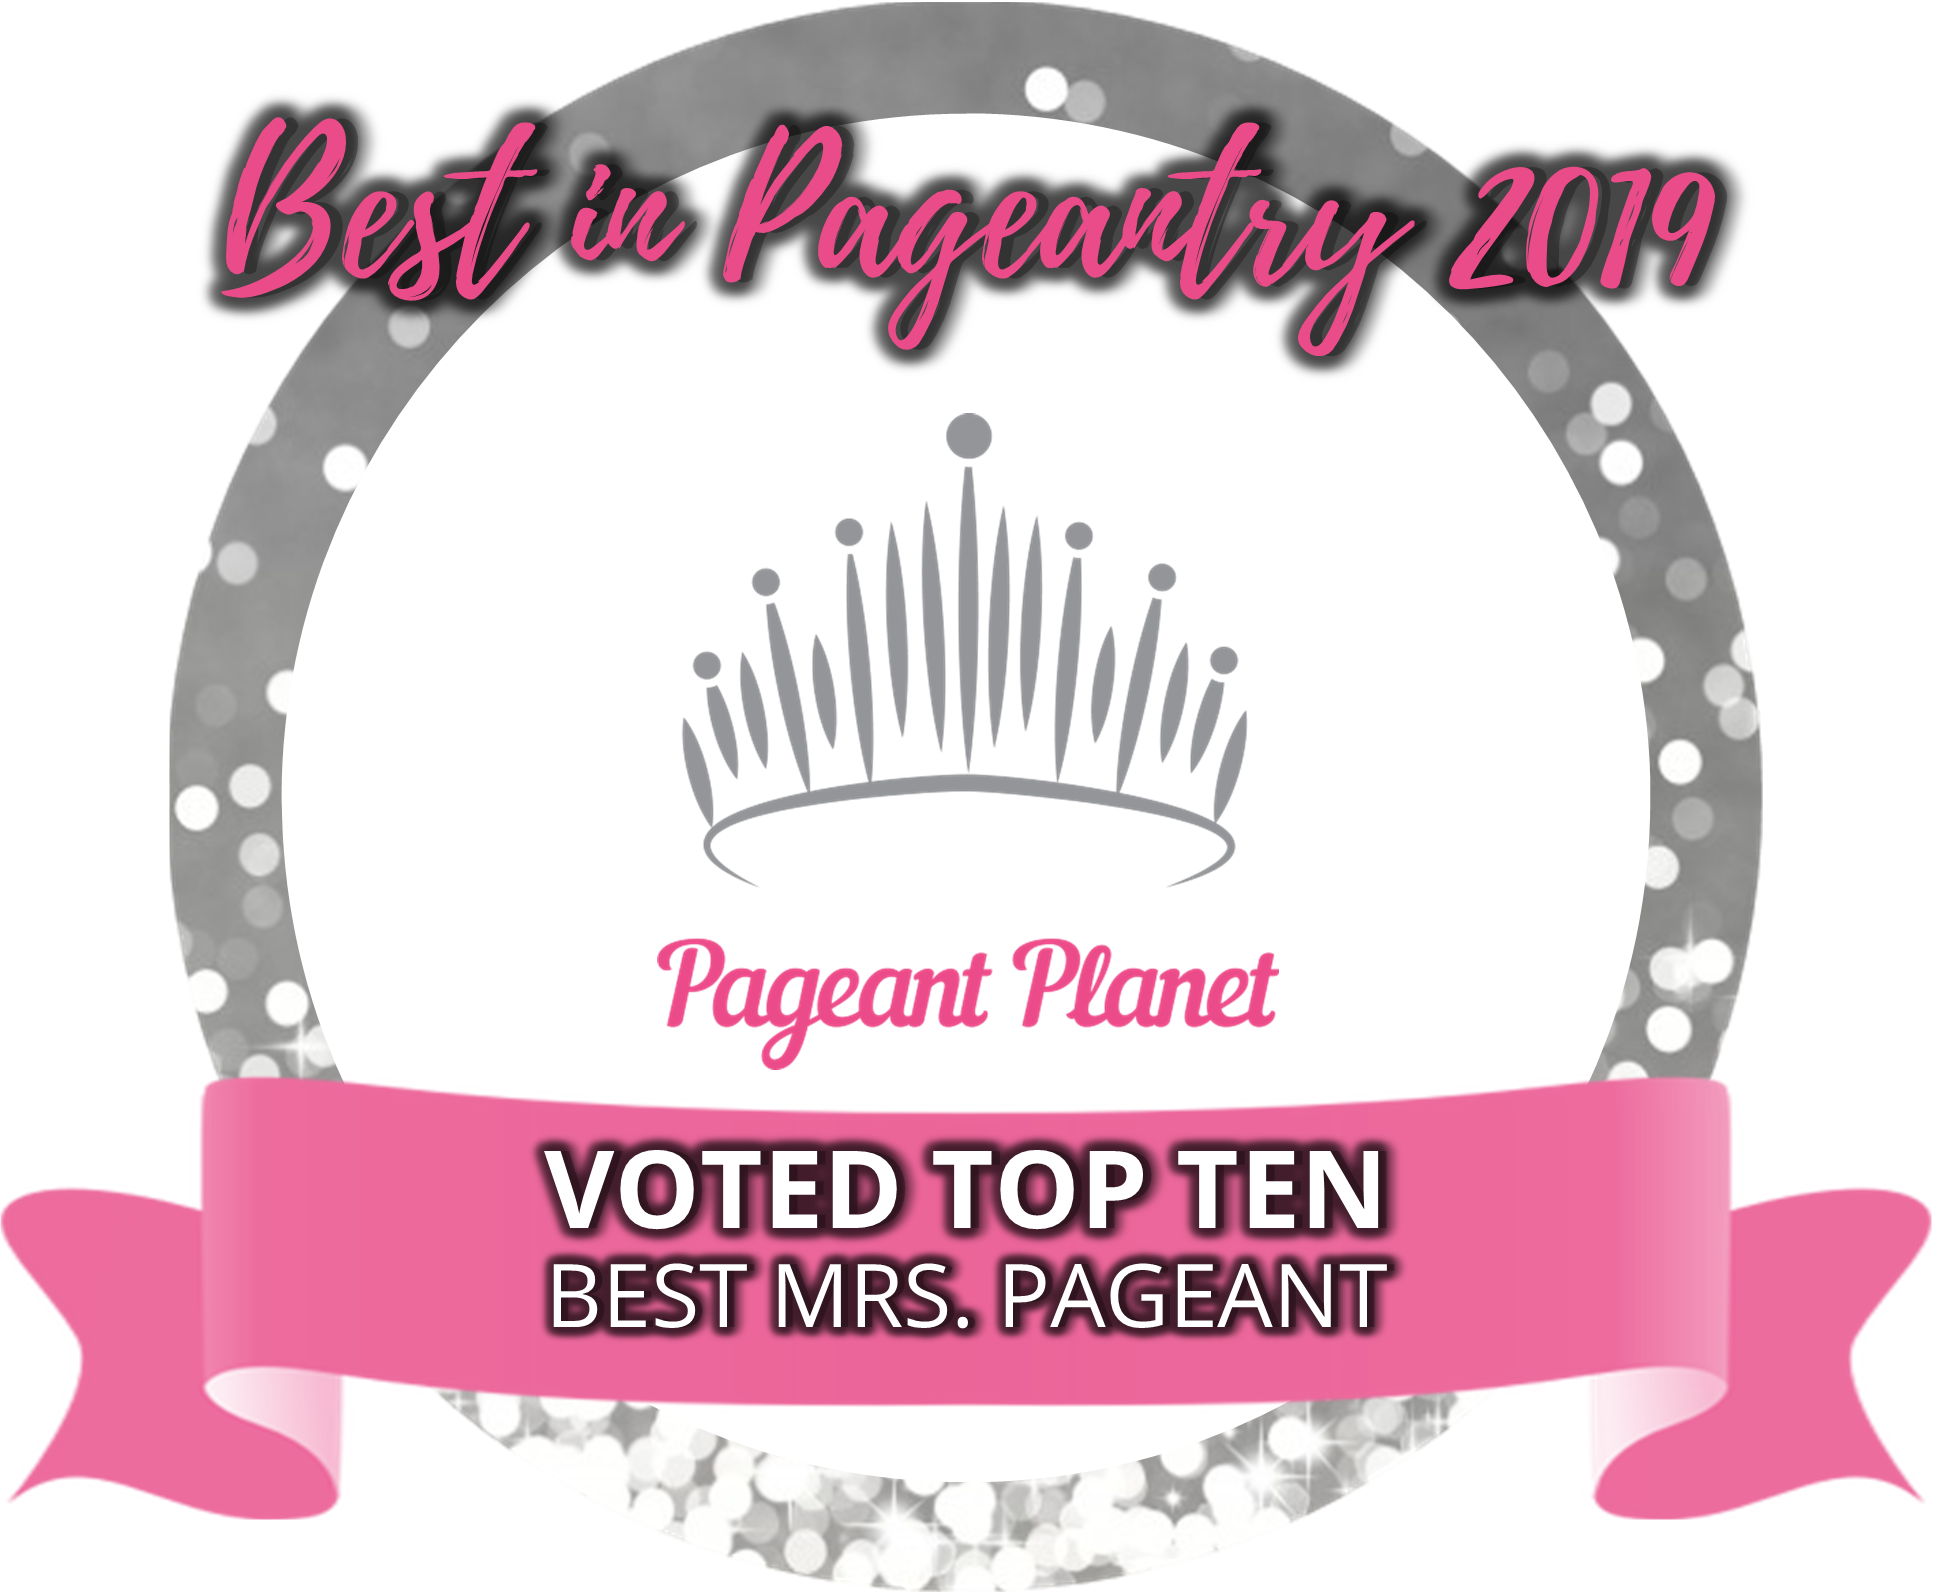 Top 10 Mrs. Pageants of 2019